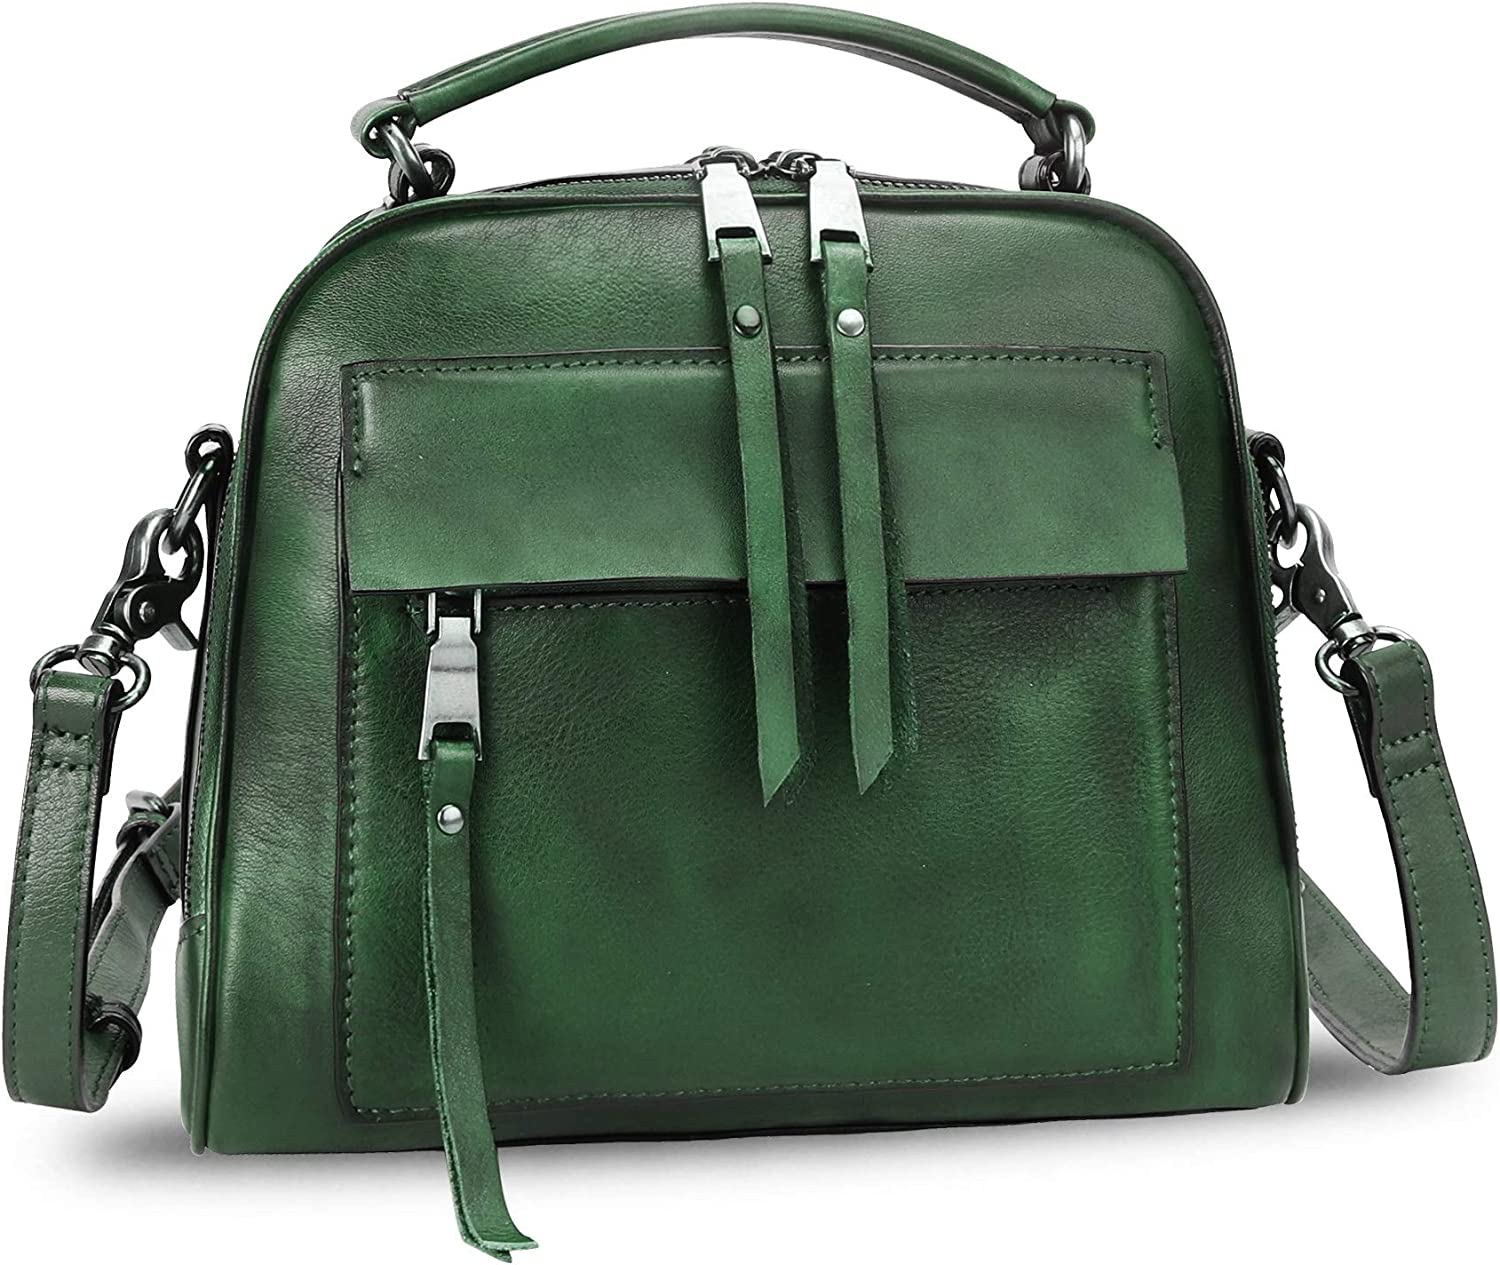 Genuine Leather Satchel Large-scale It is very popular sale Purse for Women Handmade T Retro Cowhide